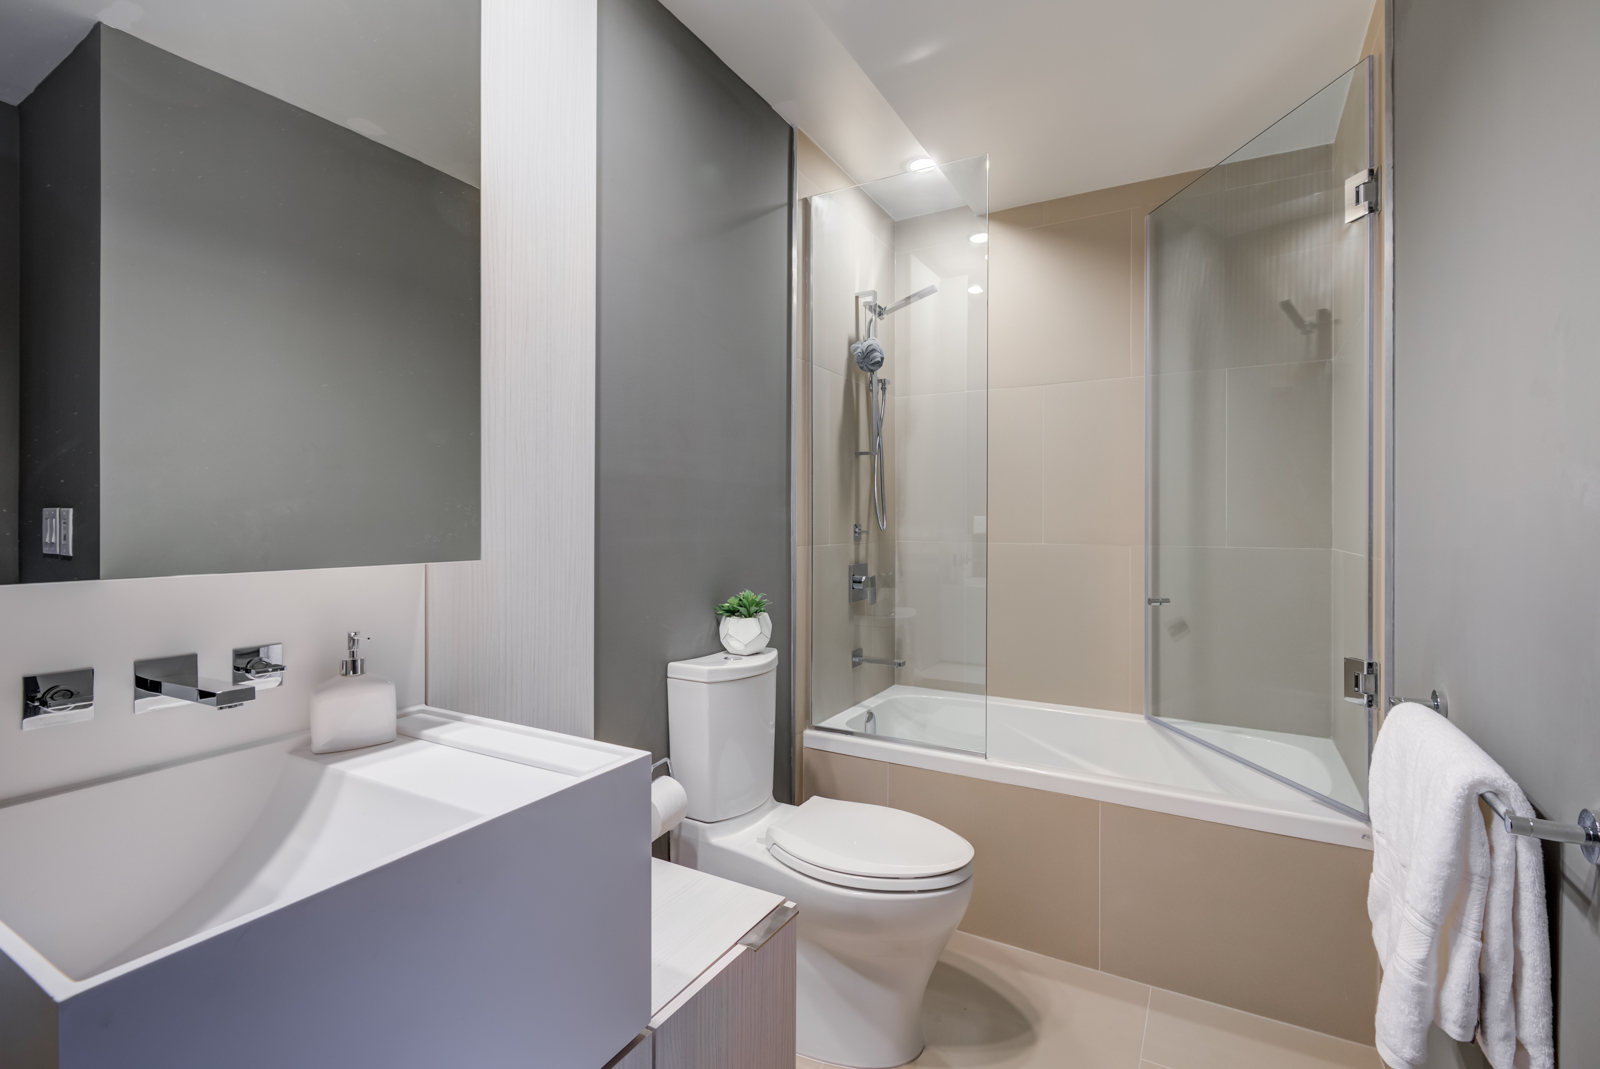 Master bath of 1 Bloor St E Unit 4305 with tub, shower, white sink bowl, and detachable showerhead.